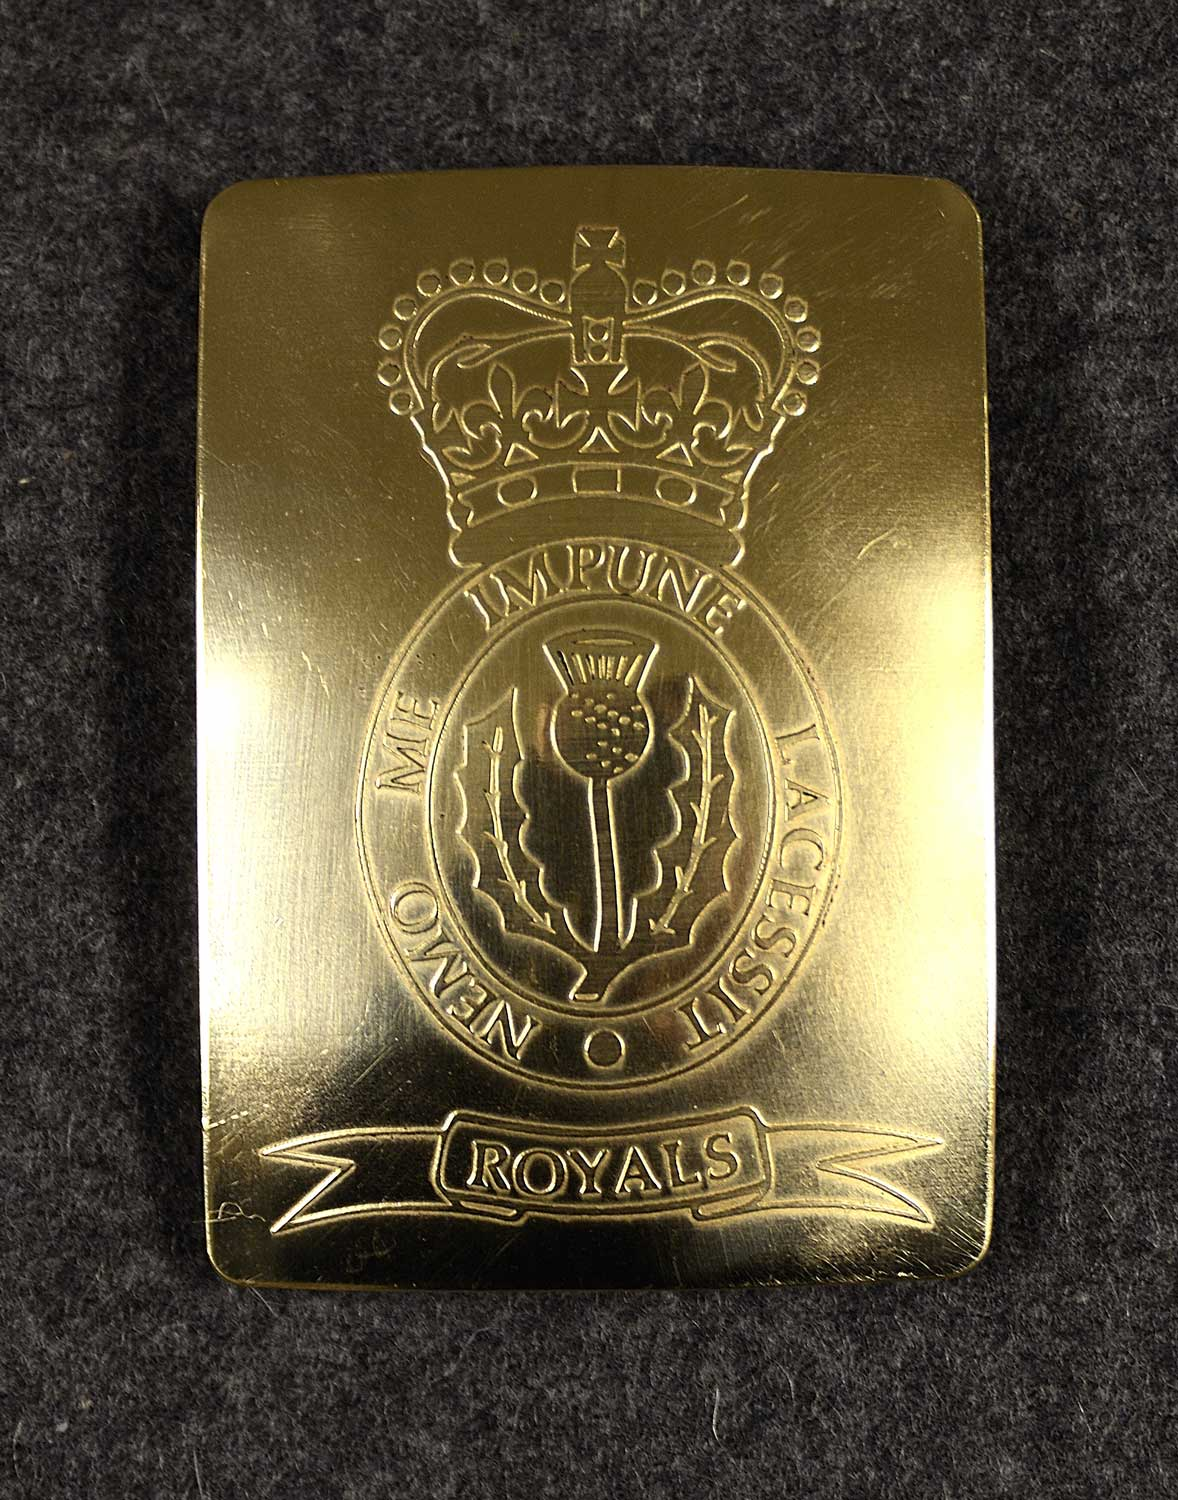 British, 1st (or Royal Scots) Regiment of Foot